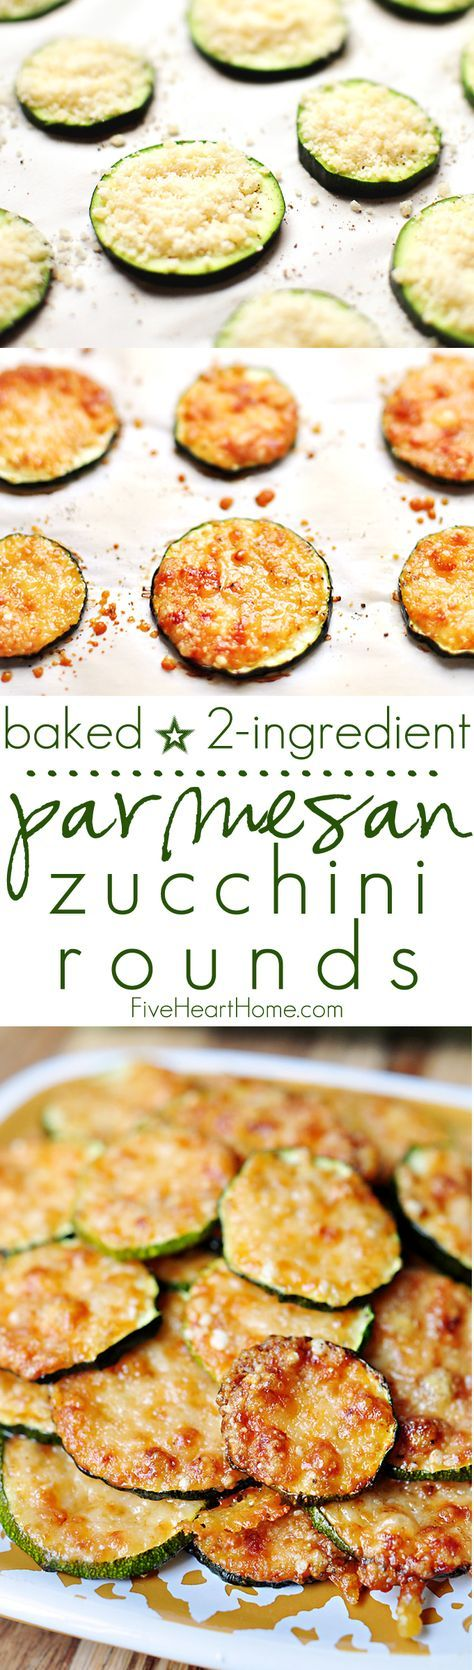 Baked Parmesan Zucchini Rounds ~ you're just 2 ingredients away from a quick and easy, delicious summer side dish! | http://FiveHeartHome.com